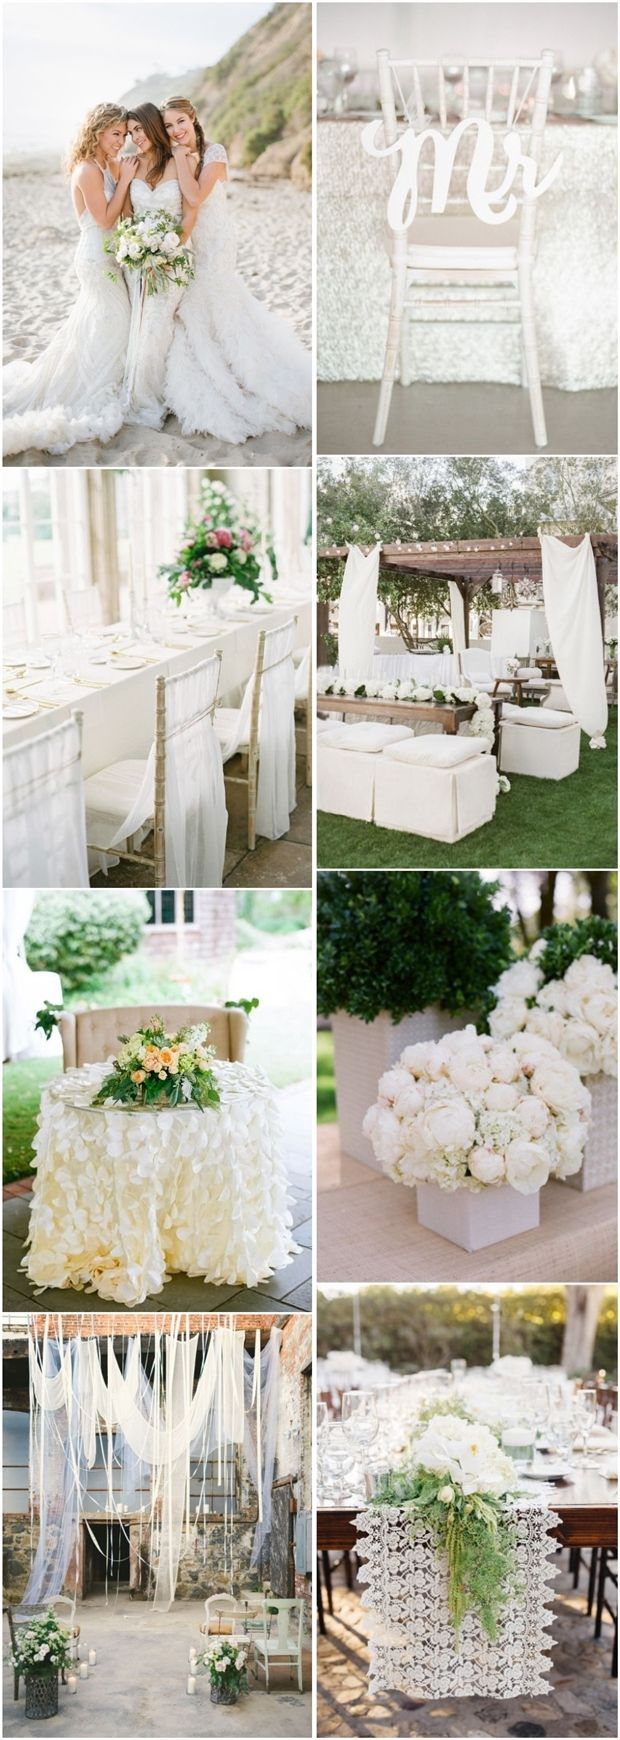 white wedding color ideas- vinatge wedding ideas